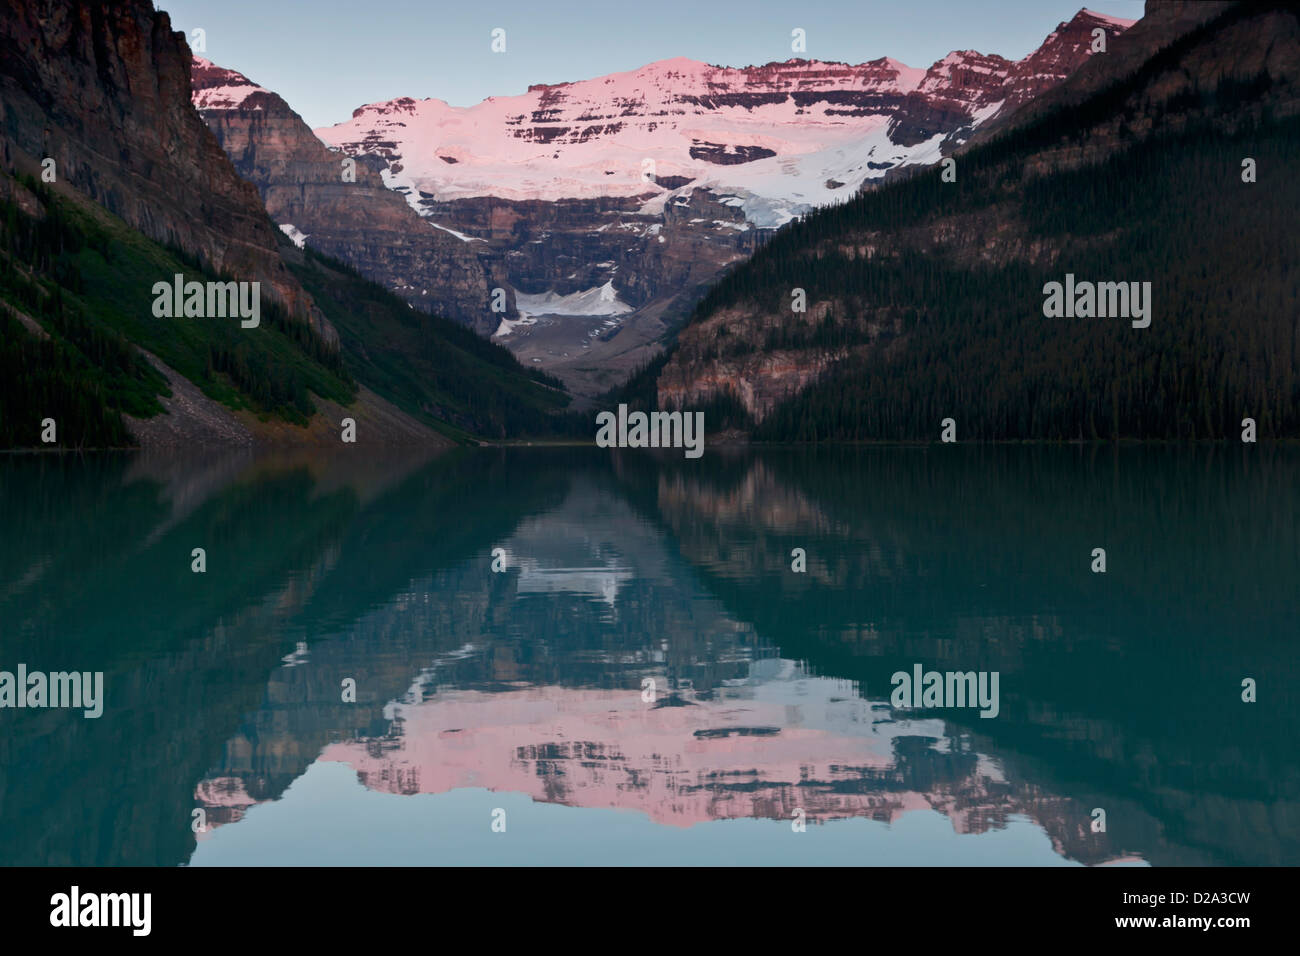 Morning alpenglow on Mount Victoria reflected in Lake Louise, Banff National Park, Canadian Rockies, Alberta, Canada. Stock Photo